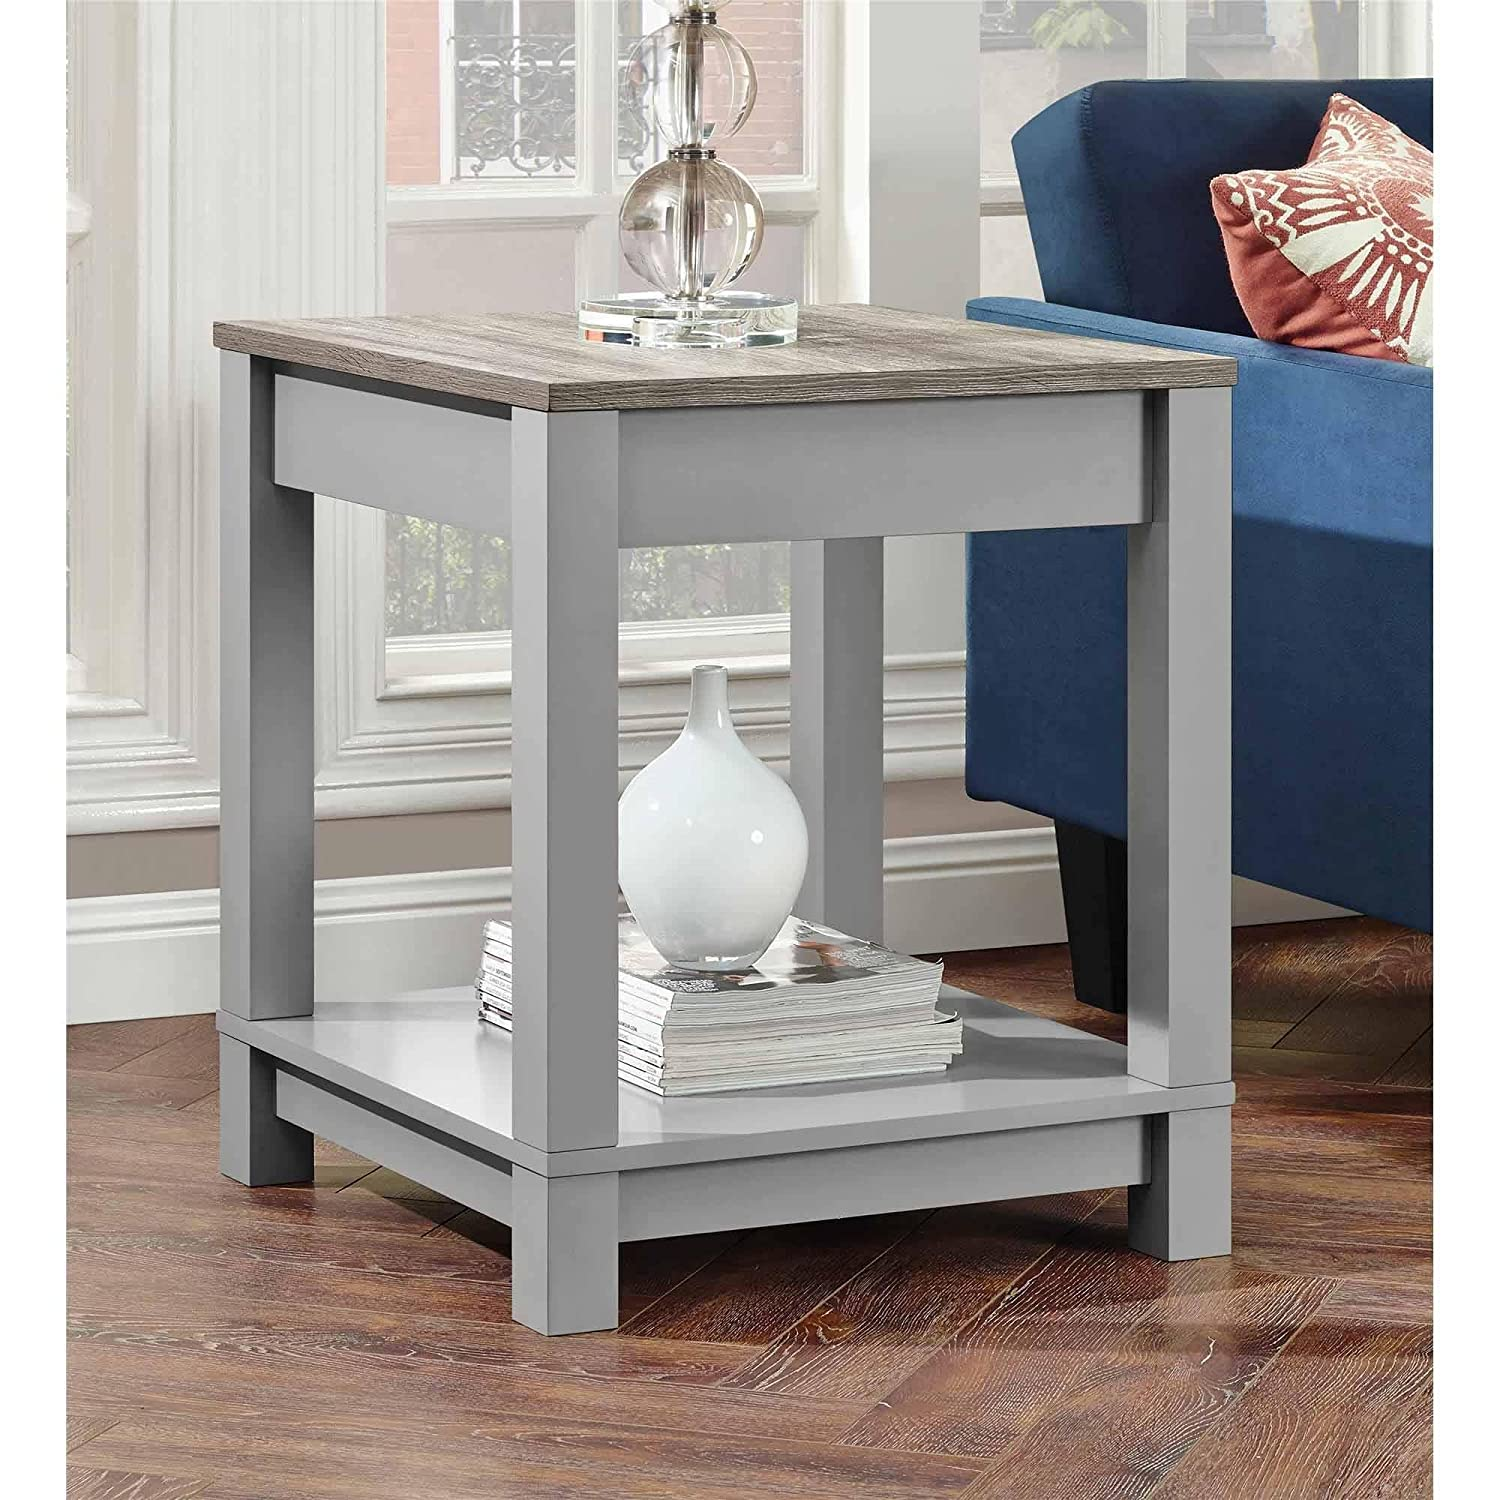 Amazon com better homes and gardens langley bay end table gray sonoma oak kitchen dining